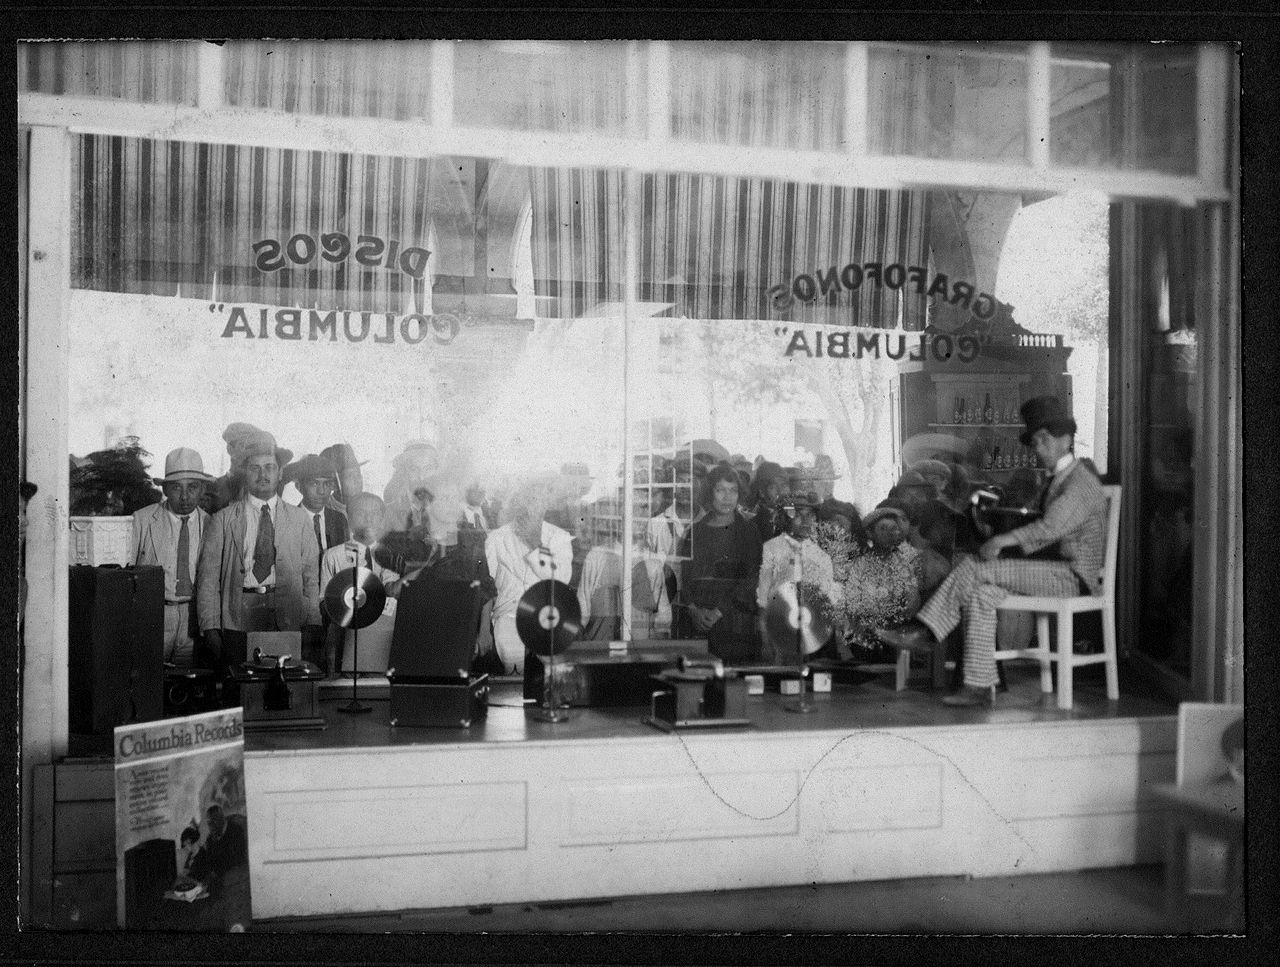 Columbia Graphophone store in Mexico City, 1930's